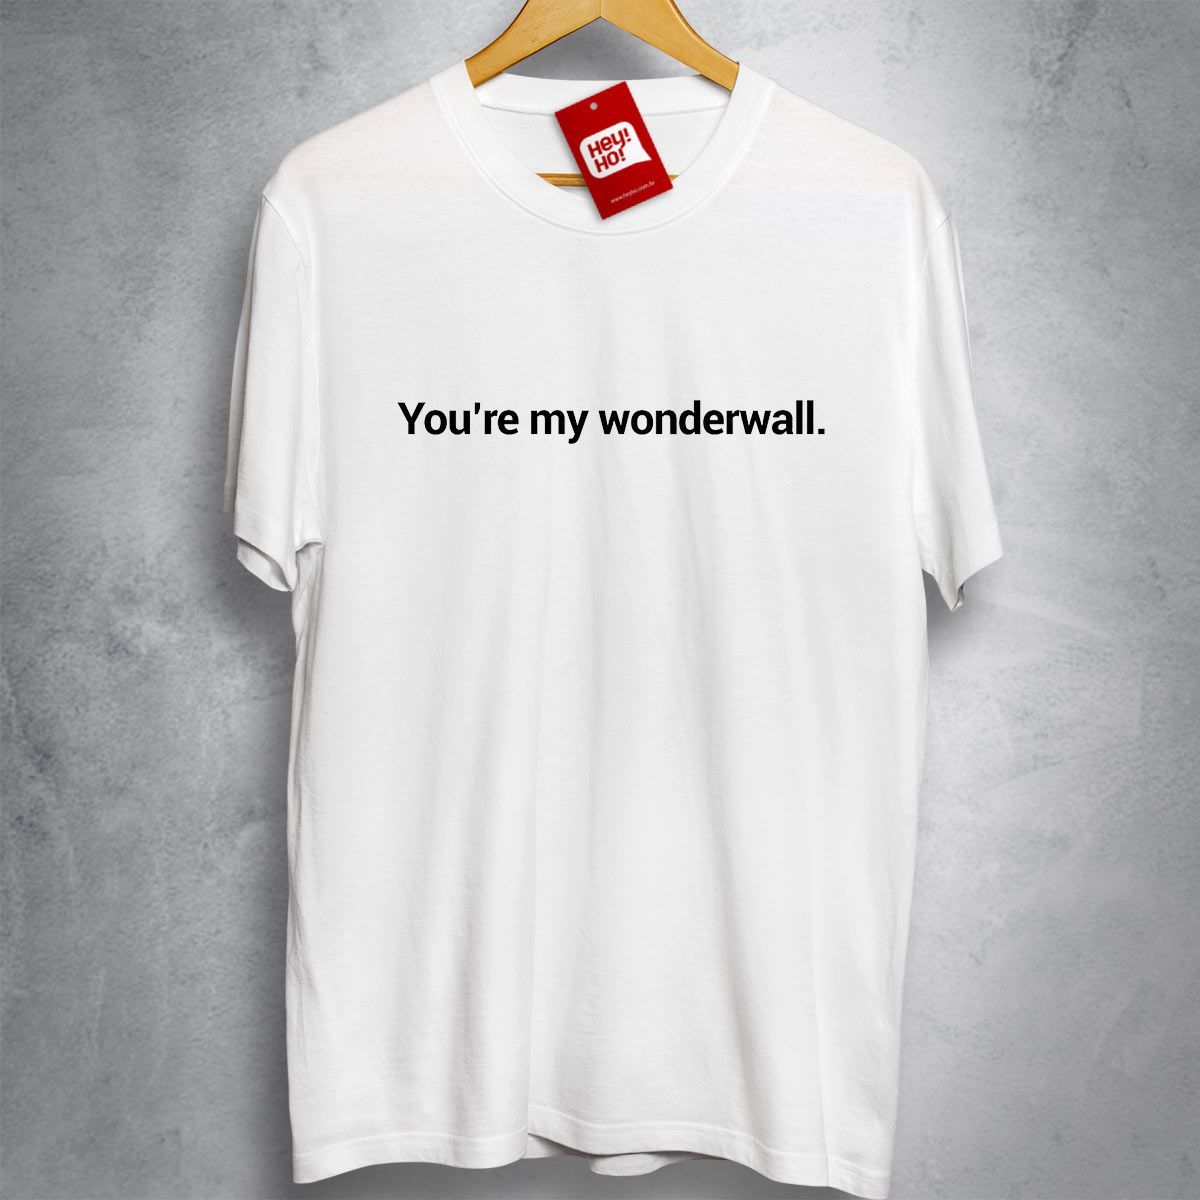 OASIS - You're my wonderwall